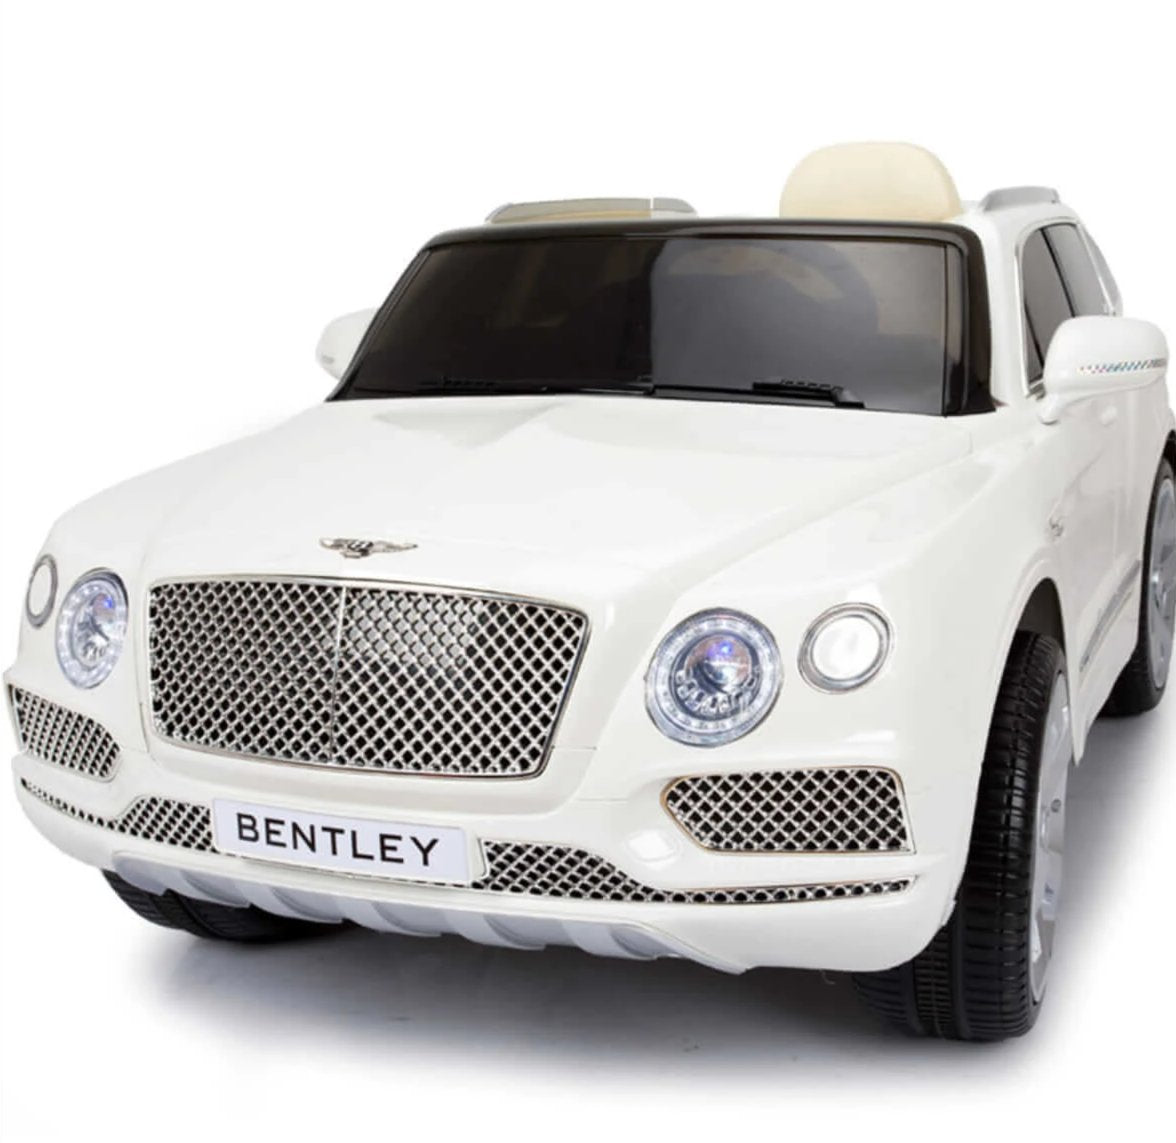 BENTLEY BENTAYGA SUV 12V KIDS RIDE-ON CAR WITH REMOTE CONTROL IN WHITE - FREE SHIPPING